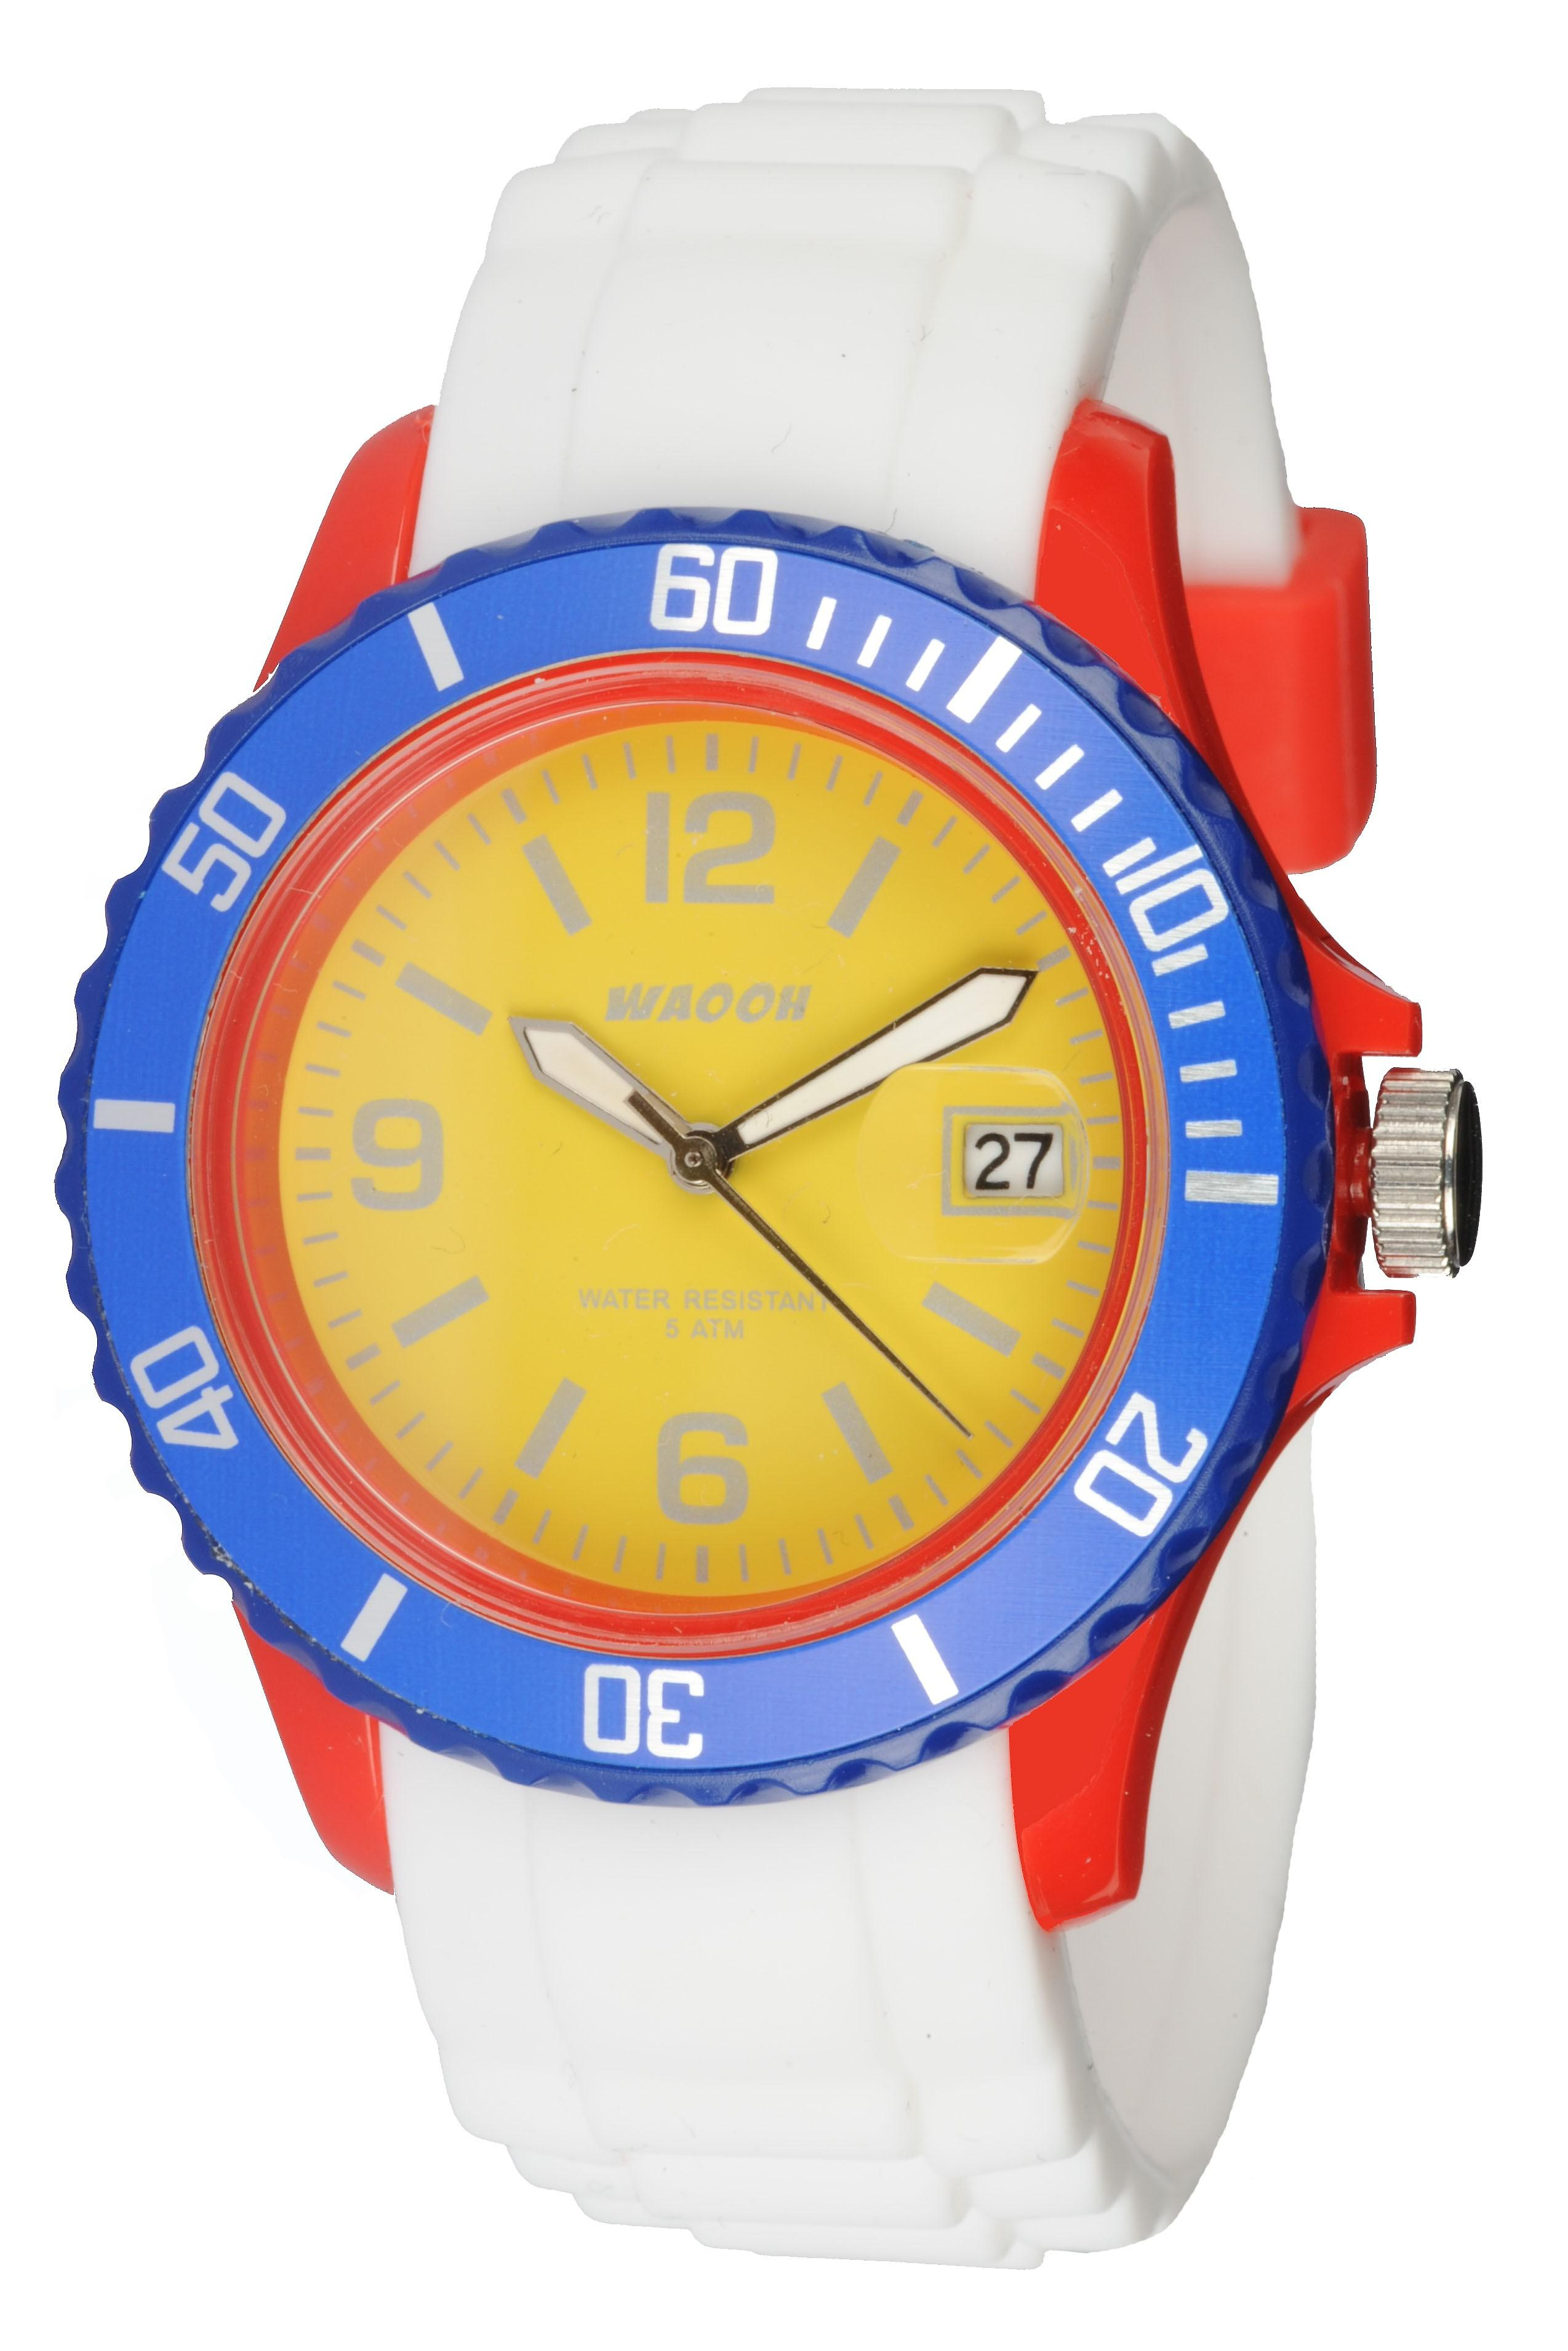 Waooh - Monaco38 Watch - Multicolor Red Yellow & Blue